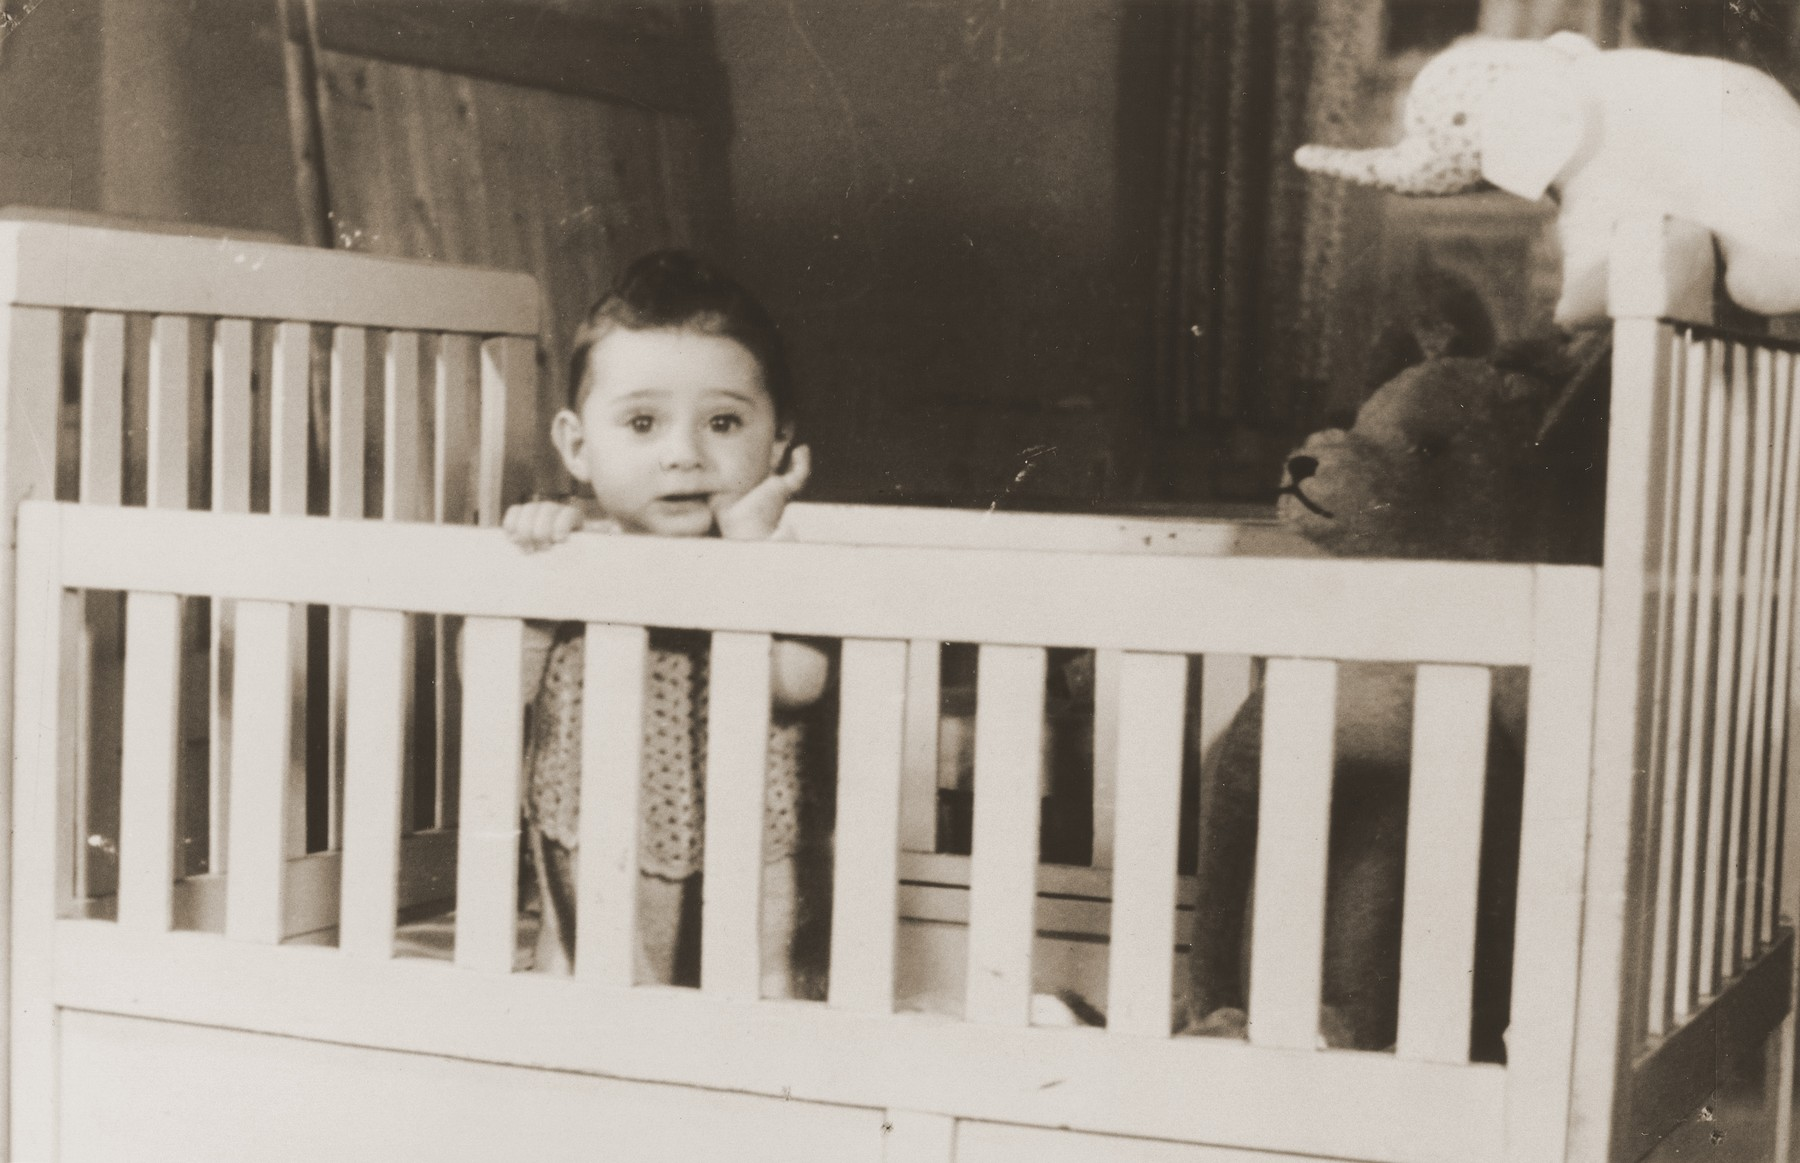 Remi Van Duinwijck, a young Jewish boy stands in his crib in the childcare center at the Joodsche Schouwburg in the Amsterdam Jewish quarter.